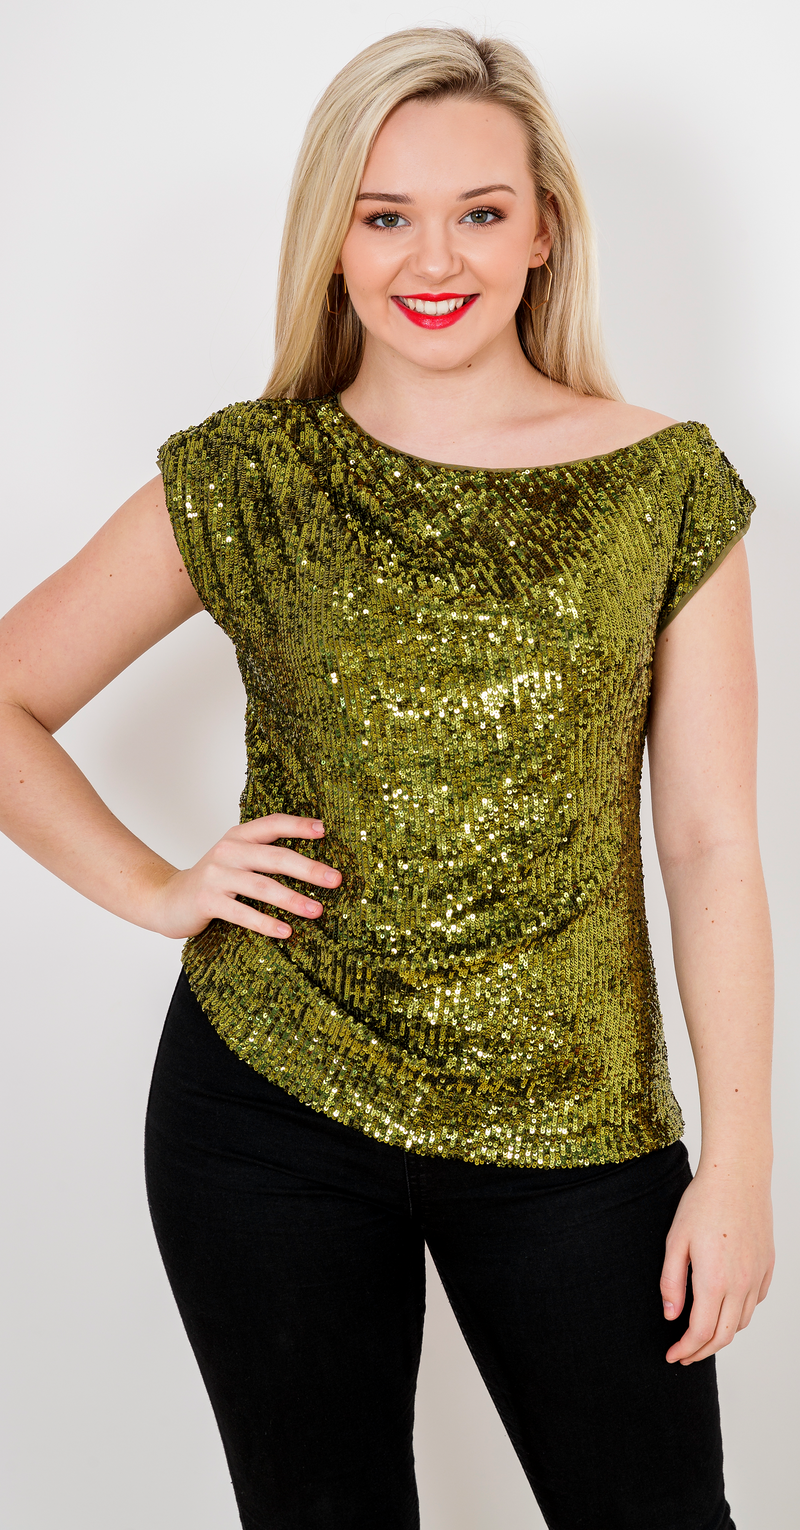 Gold Rush Top TOP342 Liquid Gold Sequins